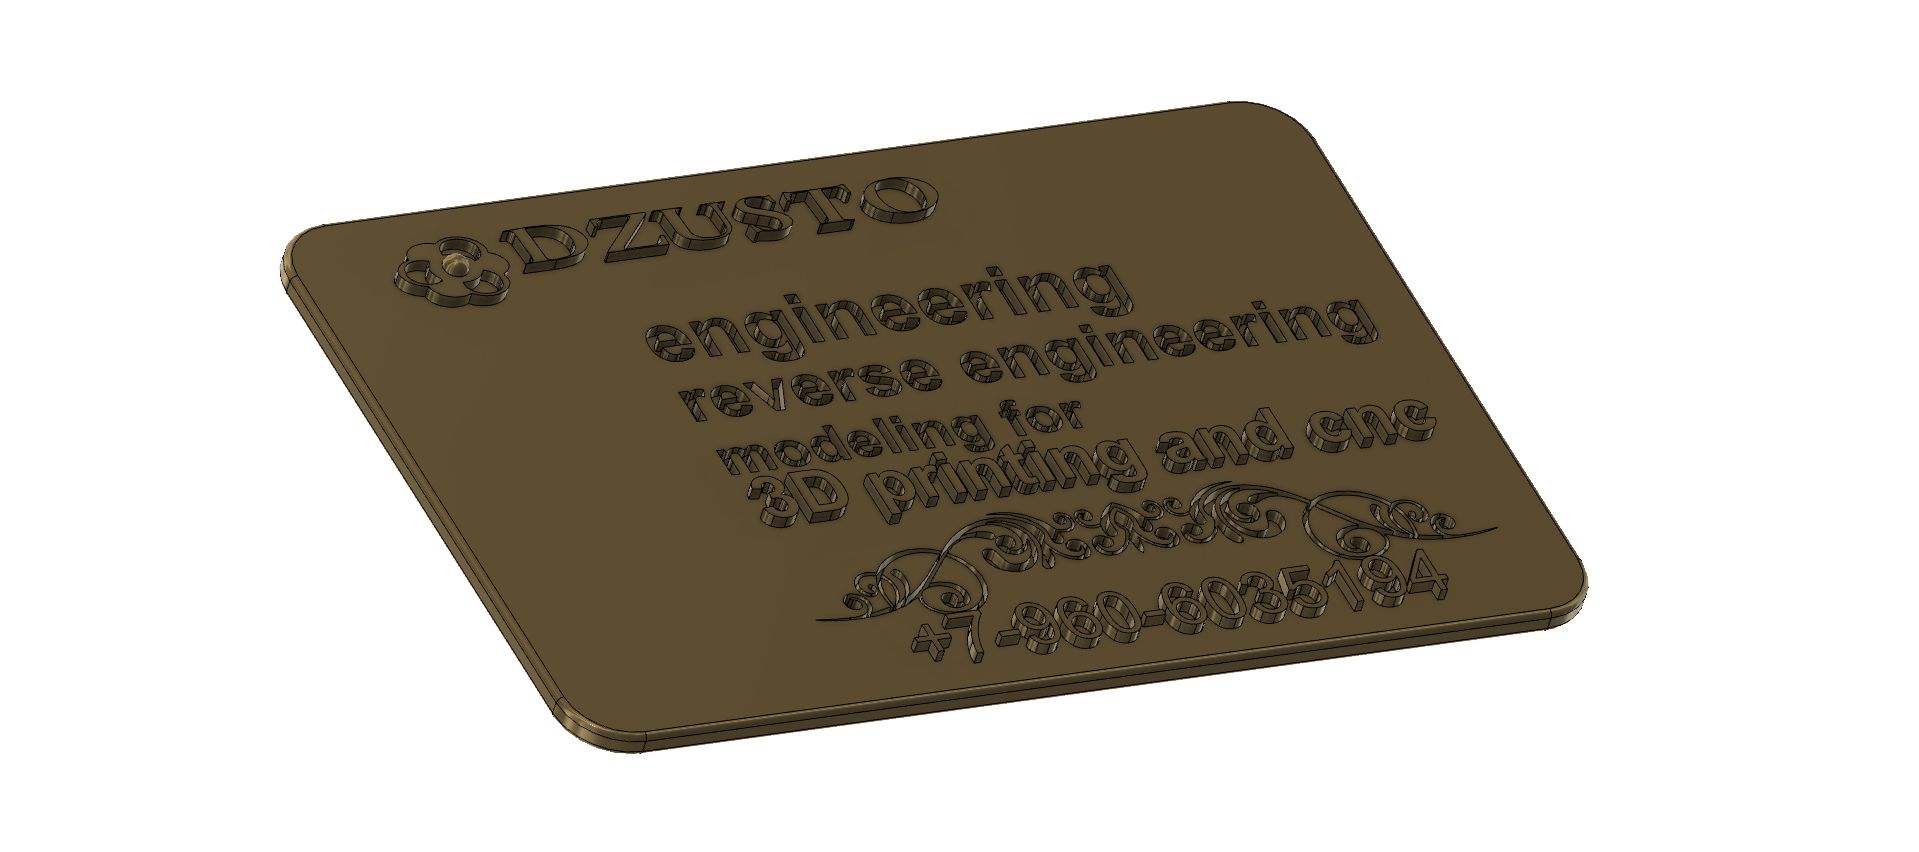 business card 01 v5-07.png Download free STL file Modeling product engineering reverse-engineering 3d print cnc • 3D printing design, Dzusto